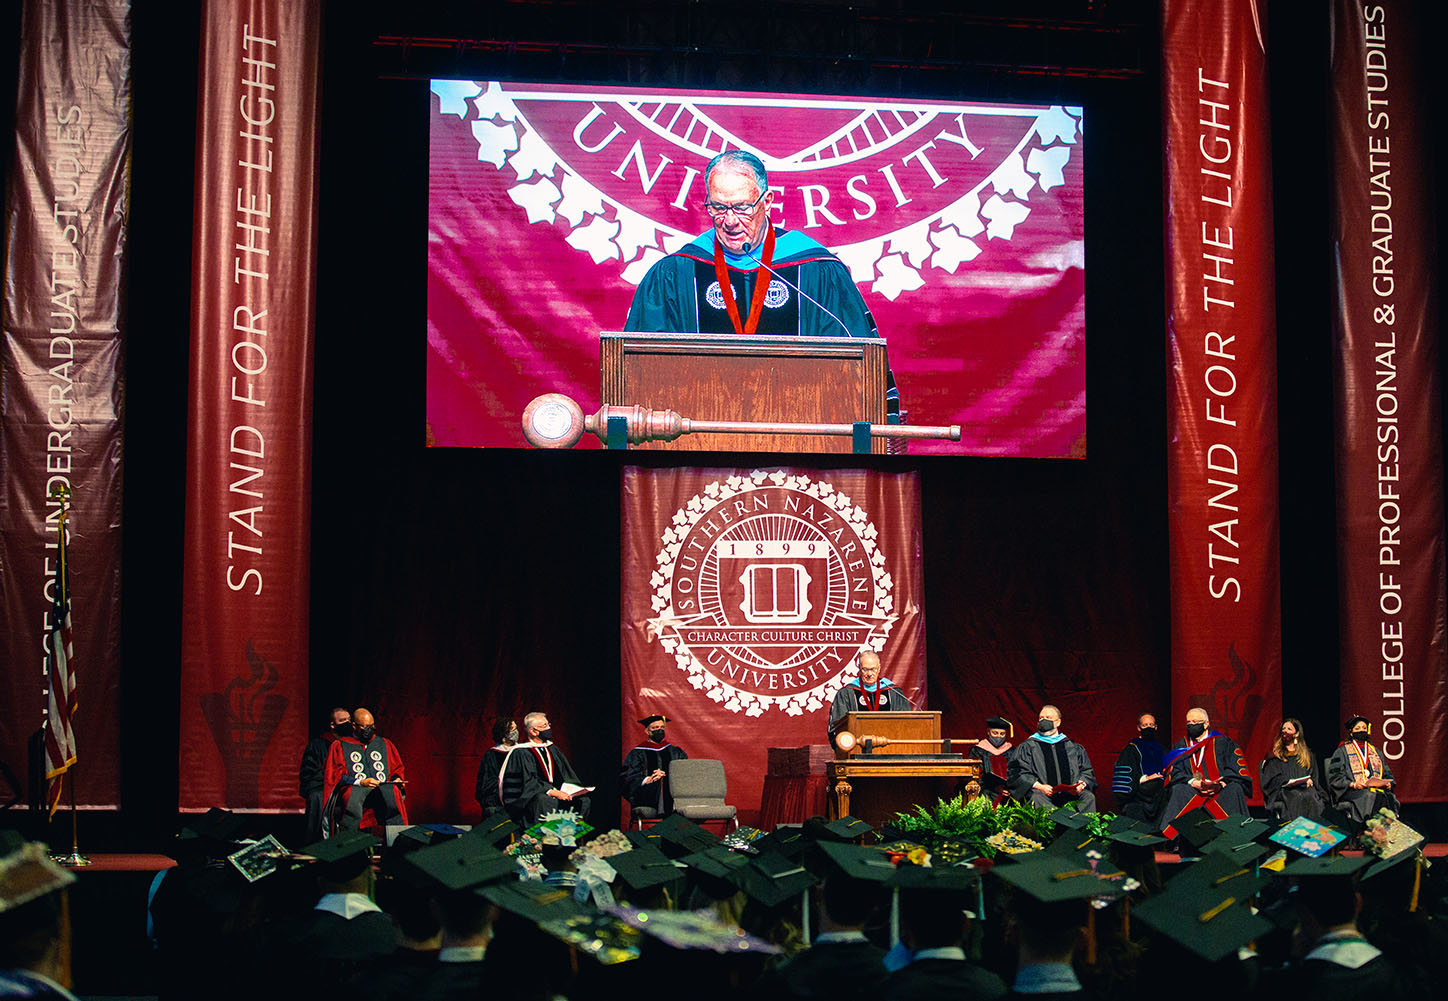 Wide image of stage from Commencement with speaker at podium